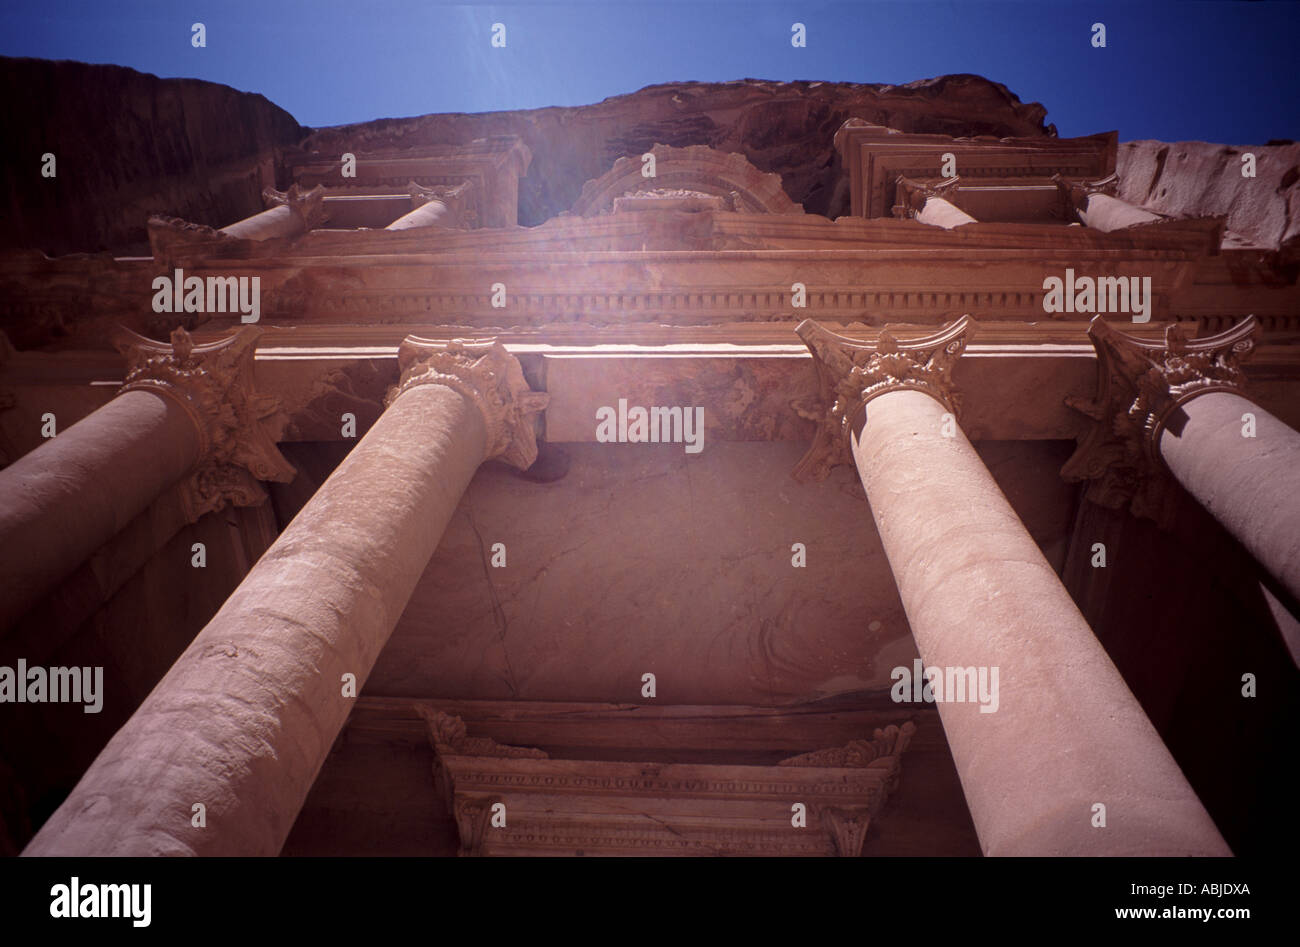 Columns at the front face of the Treasury in Petra, Jordan - Stock Image